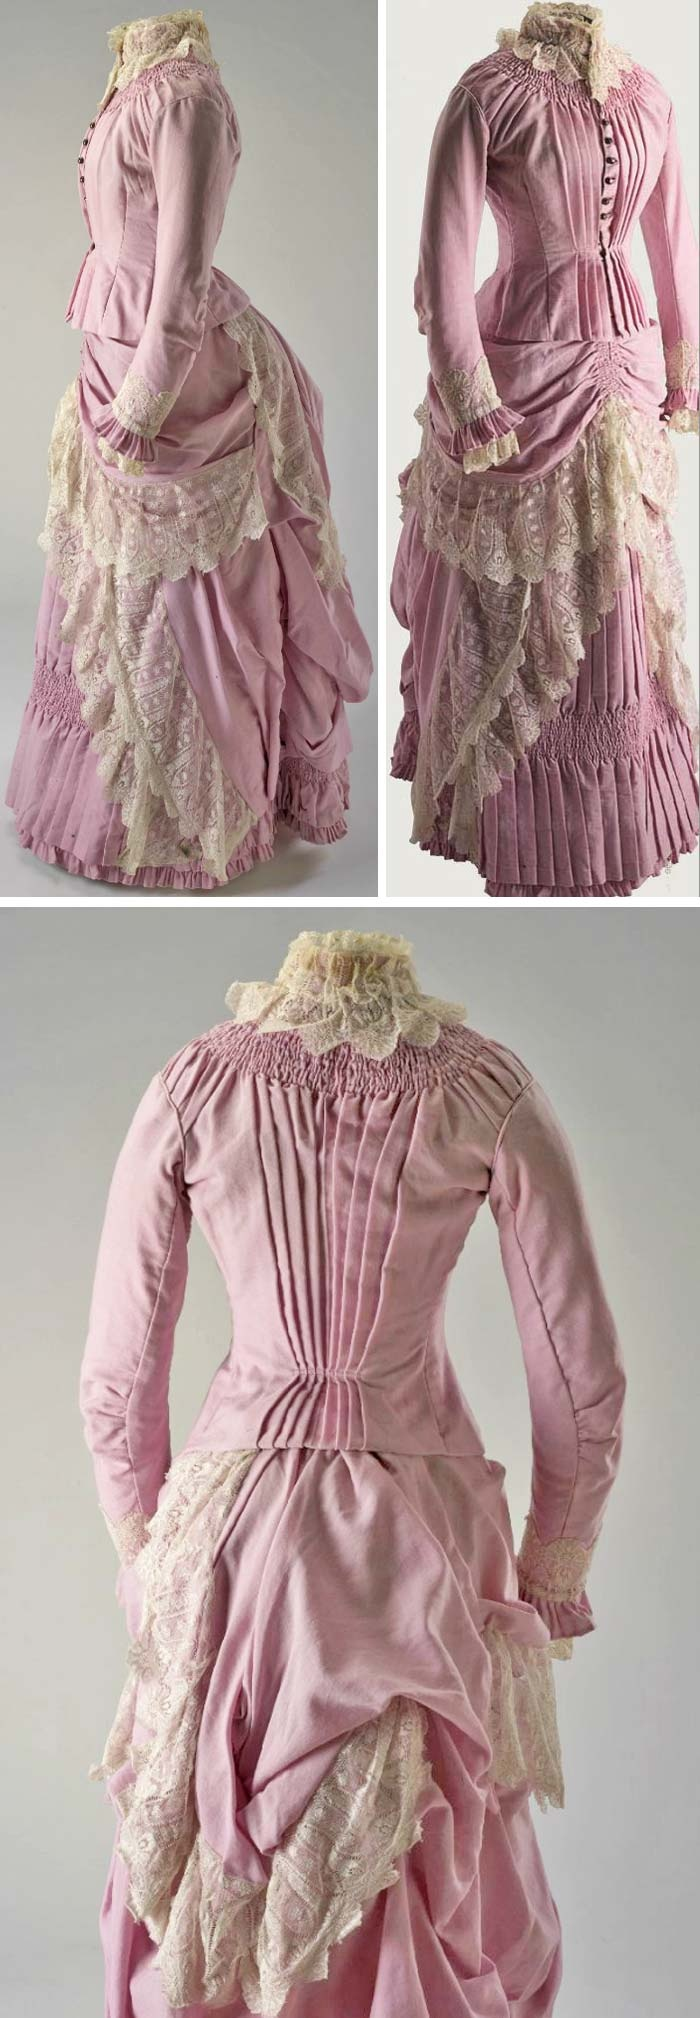 Dress, circa 1885, English or Australian, sold by David Jones & Co., Sydney. Australian merino wool and cream lace. Tight-fitting boned and lined bodice Voluminous skirt made for bustle. Main panel is hand-shirred at yoke & hem, and is pleated & smocked w/heavy boning to keep tunnel shape. Top skirt/apron draped over underskirt panel and finished with lace panels, creating layers of multiple flounces and frills. National Museum, Australia, & Australian Dress Register.